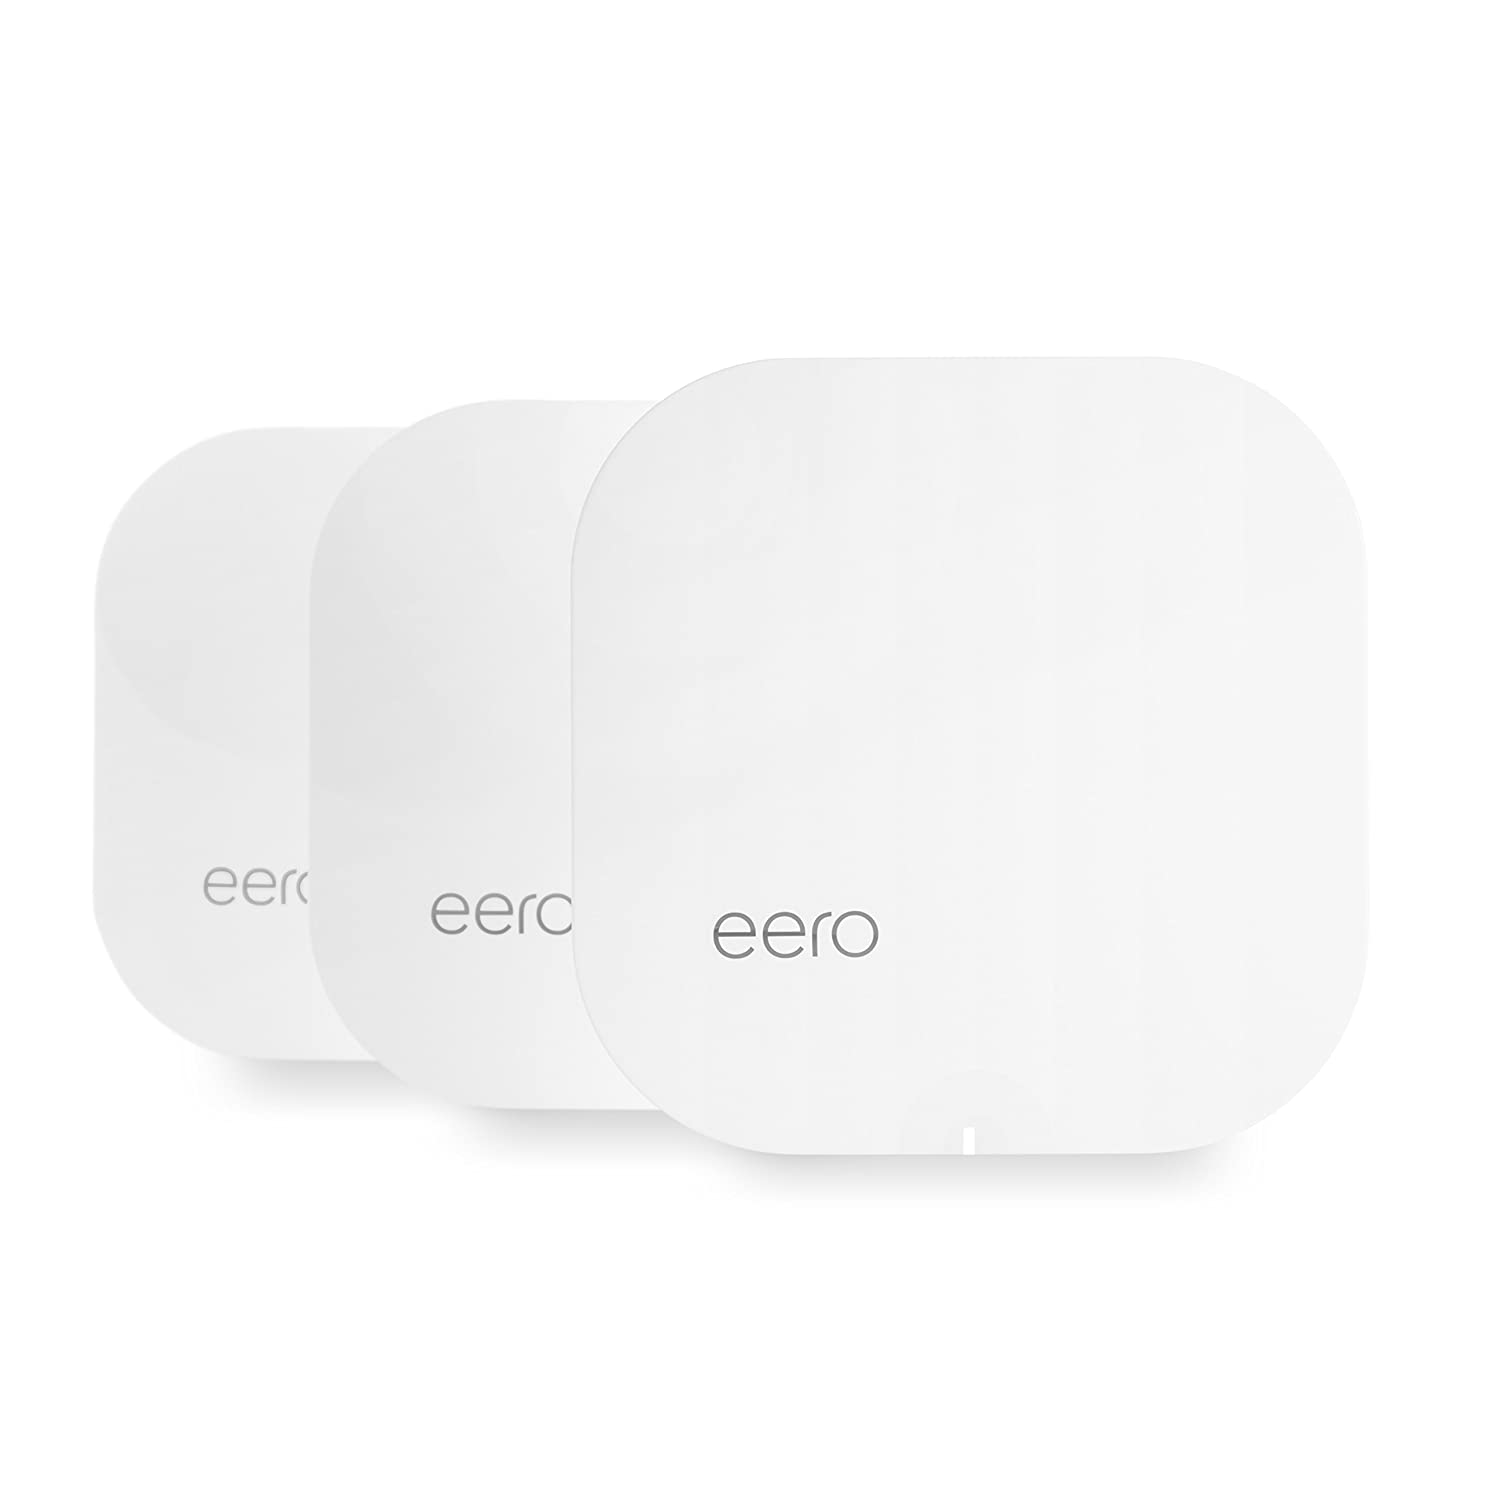 eero Home WiFi System (Pack of 3) - Complete WiFi Range Extender and Wireless Router Replacement System, Gigabit Speed, WPA2 Encryption